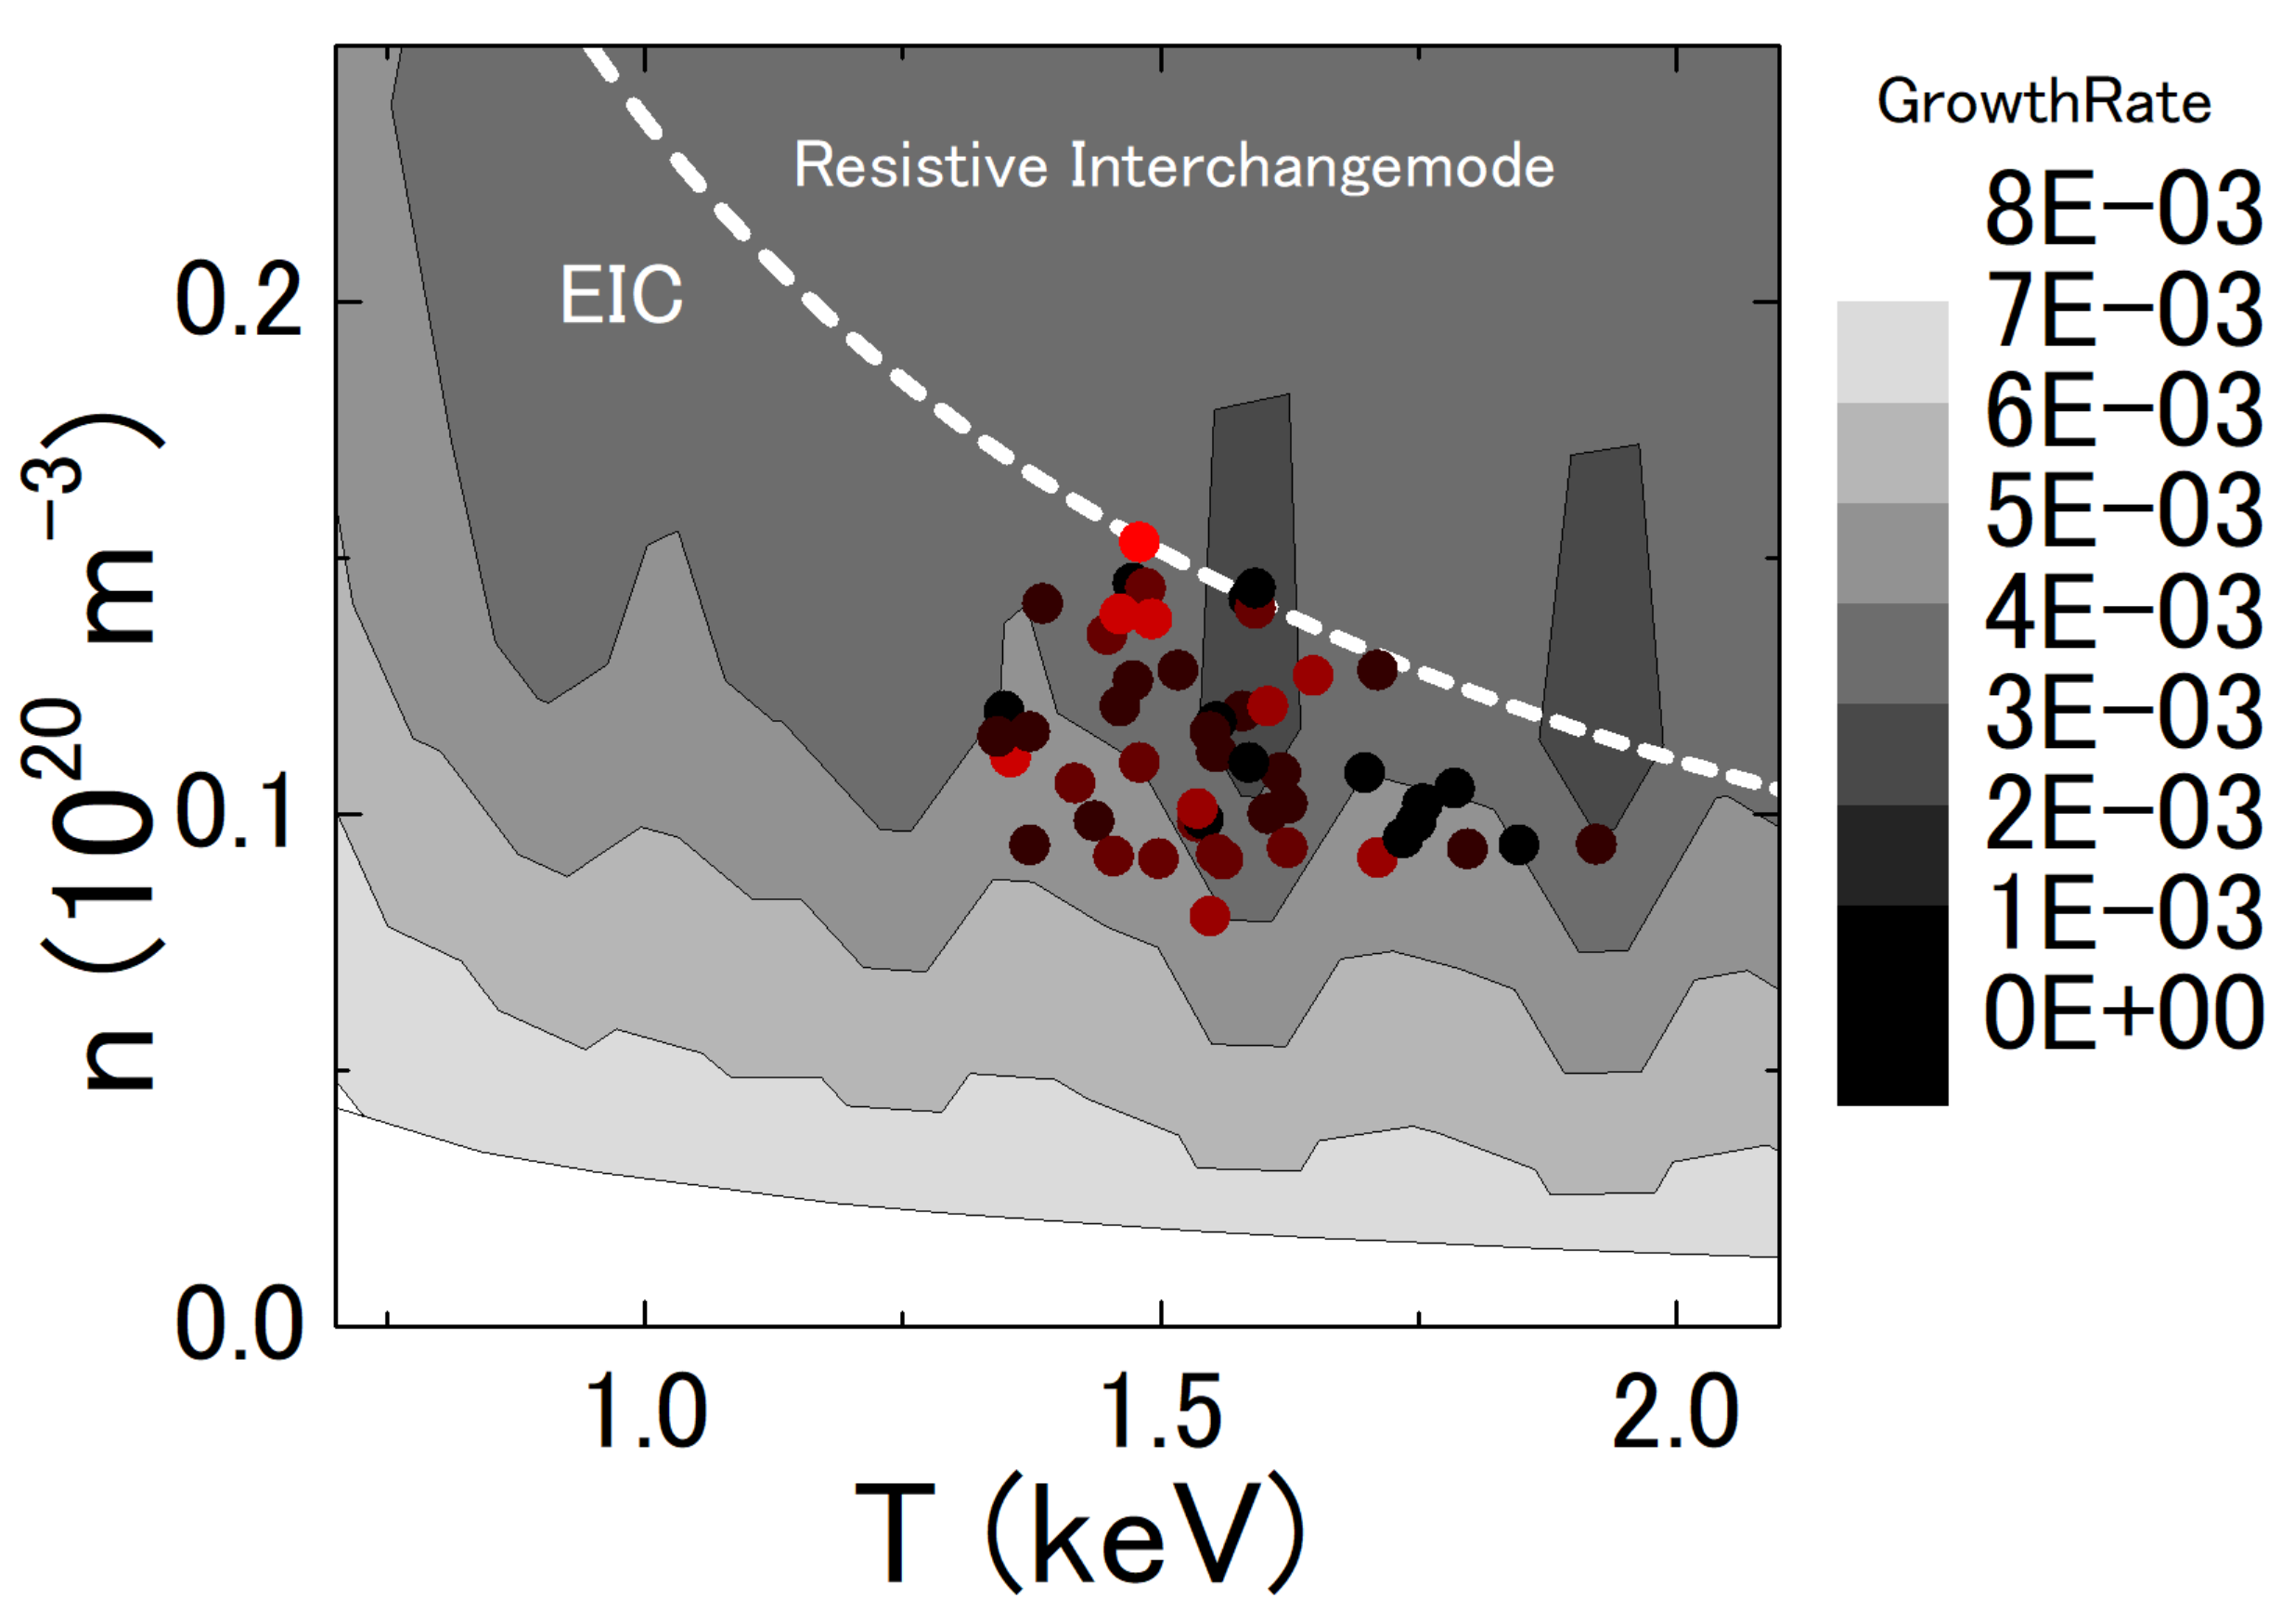 Stability diagram of the EIC mode as a function of the local temperature and density. The dashed white line shows the transition between dominant 1/1 EIC and the resistive interchangemode fitted by the nonlinear curve n = aTb. The global plasma parameters are fixed to the condition of #116190 [2]. Central ion temperature Ti0=2keV. Beta of bulk plasma and the beam are 0.32% and 0.37% respectively. The circular plots in the graph show the plasma parameter when the EIC bursts are excited. The amplitude of EIC bursts is shown by color (small:black to large:red).